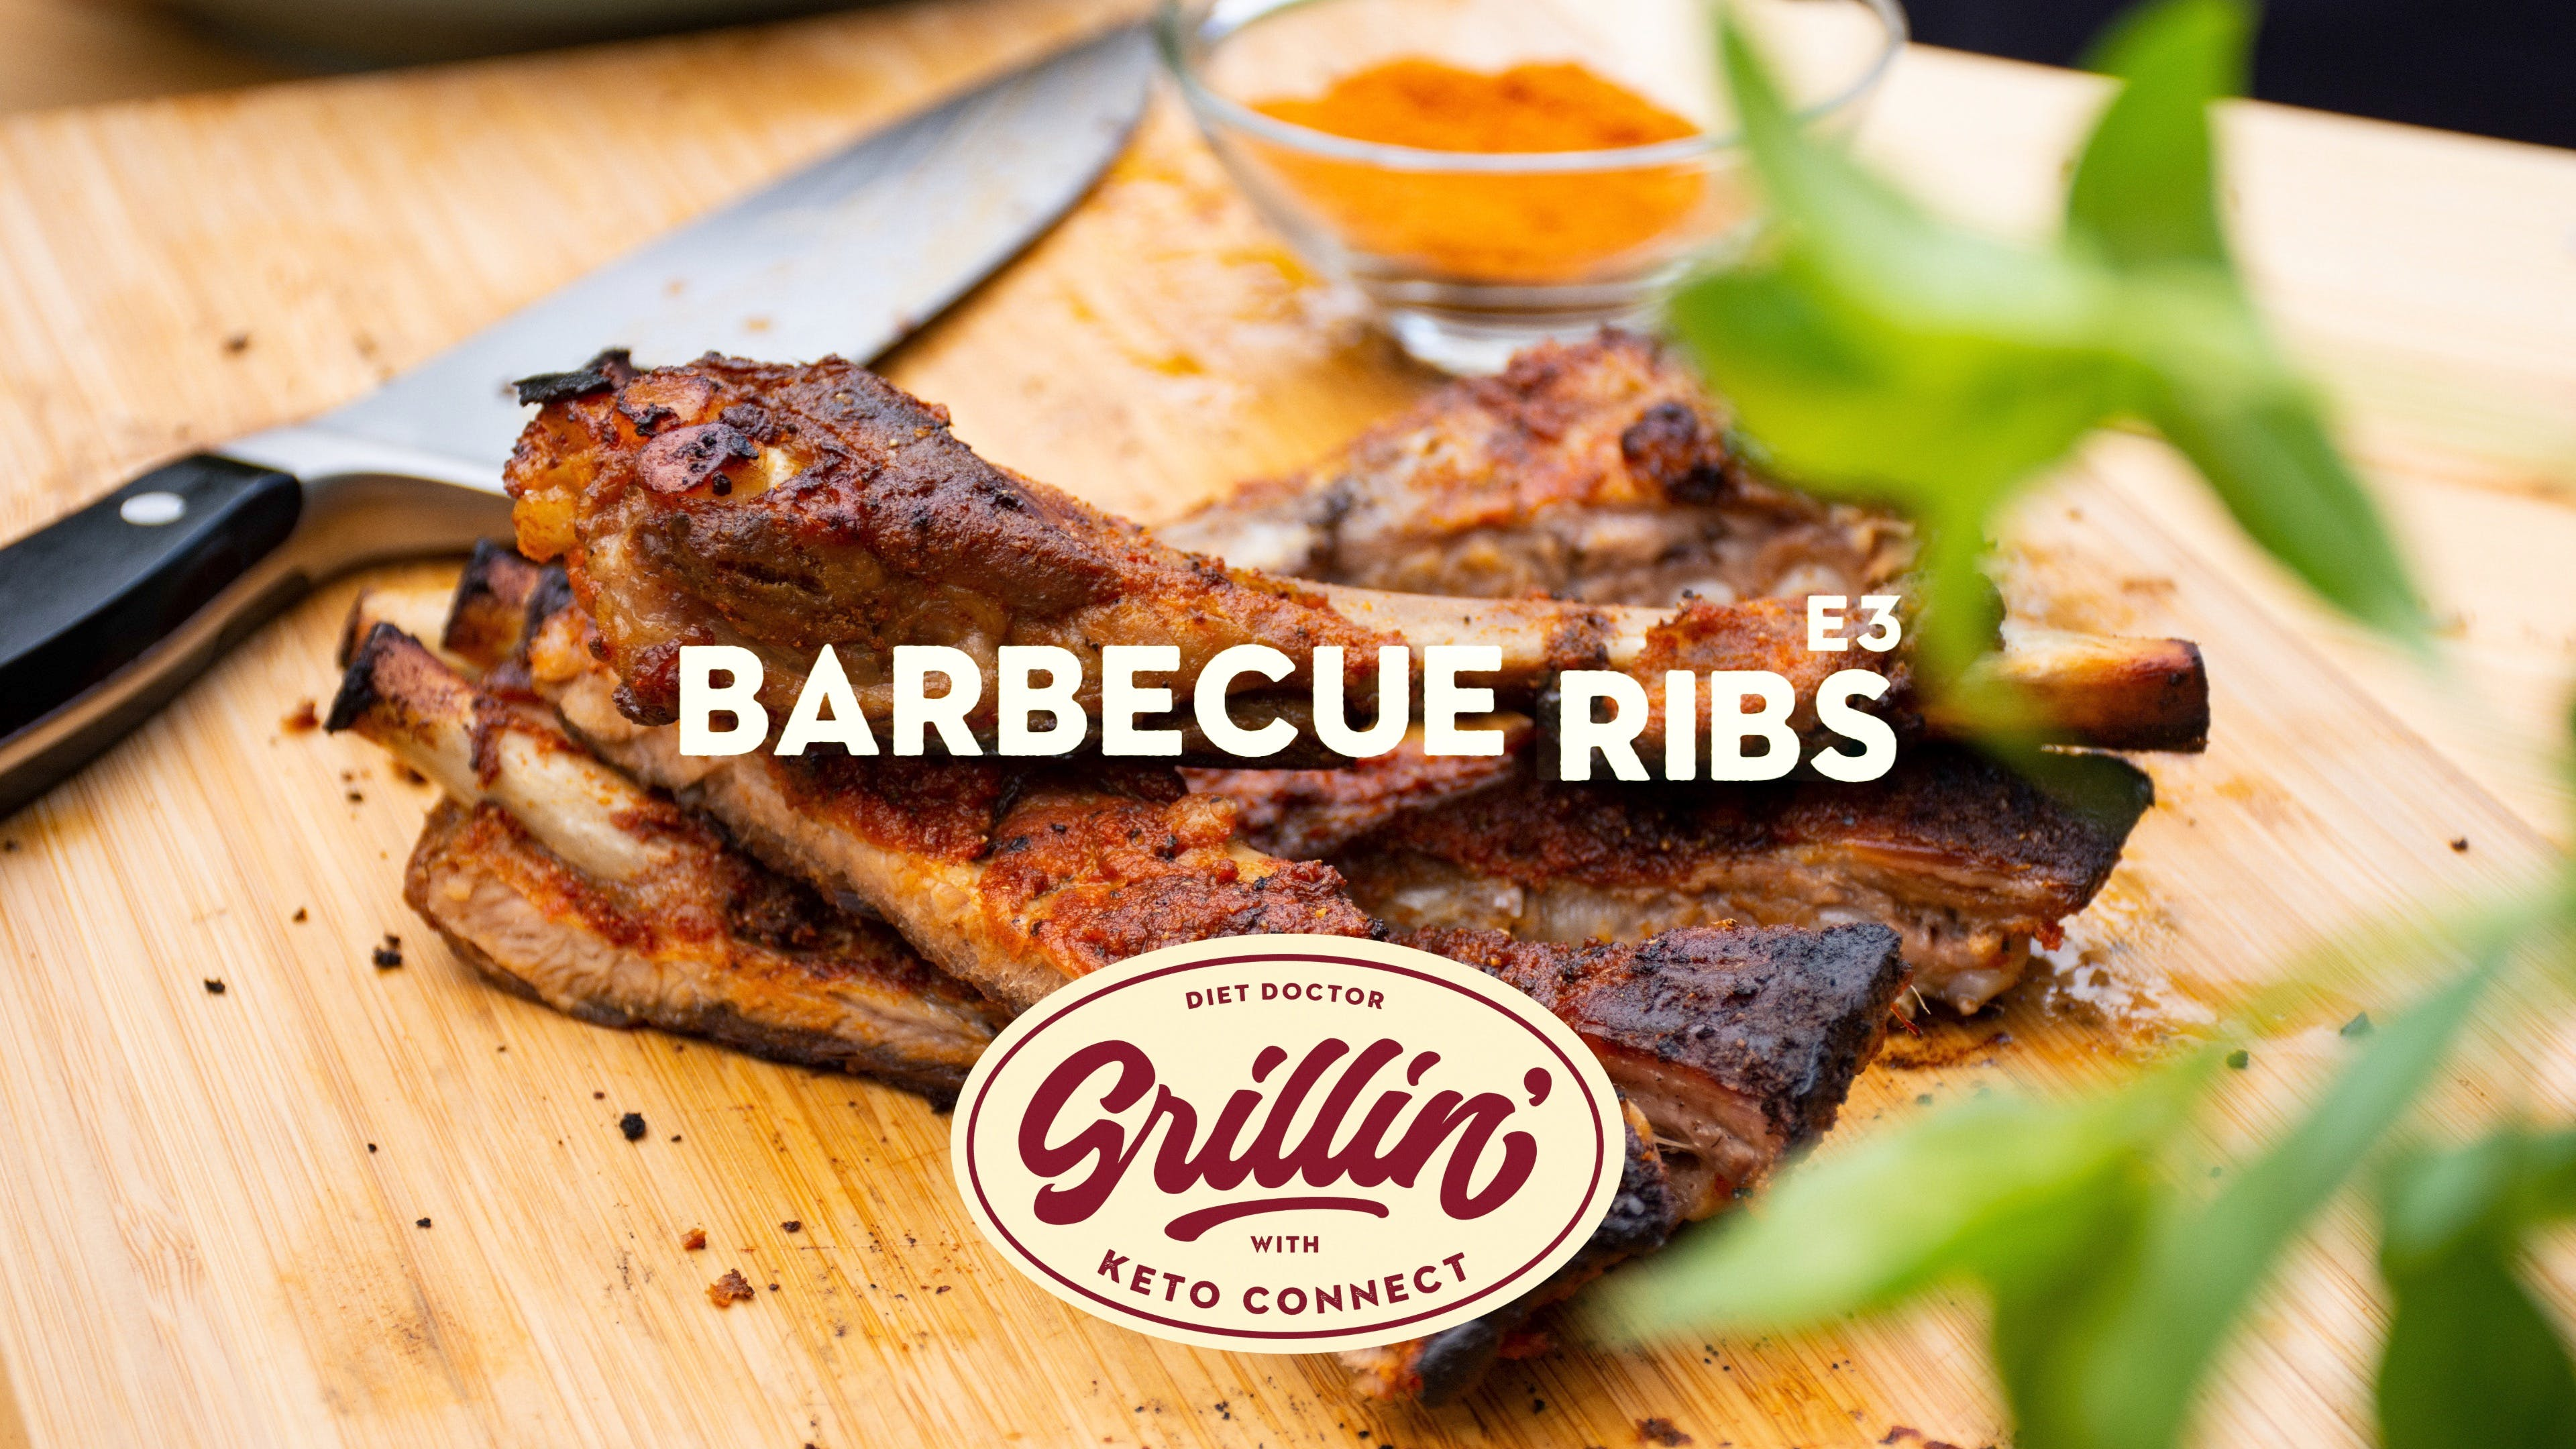 Barbecue ribs — Cooking with KetoConnect